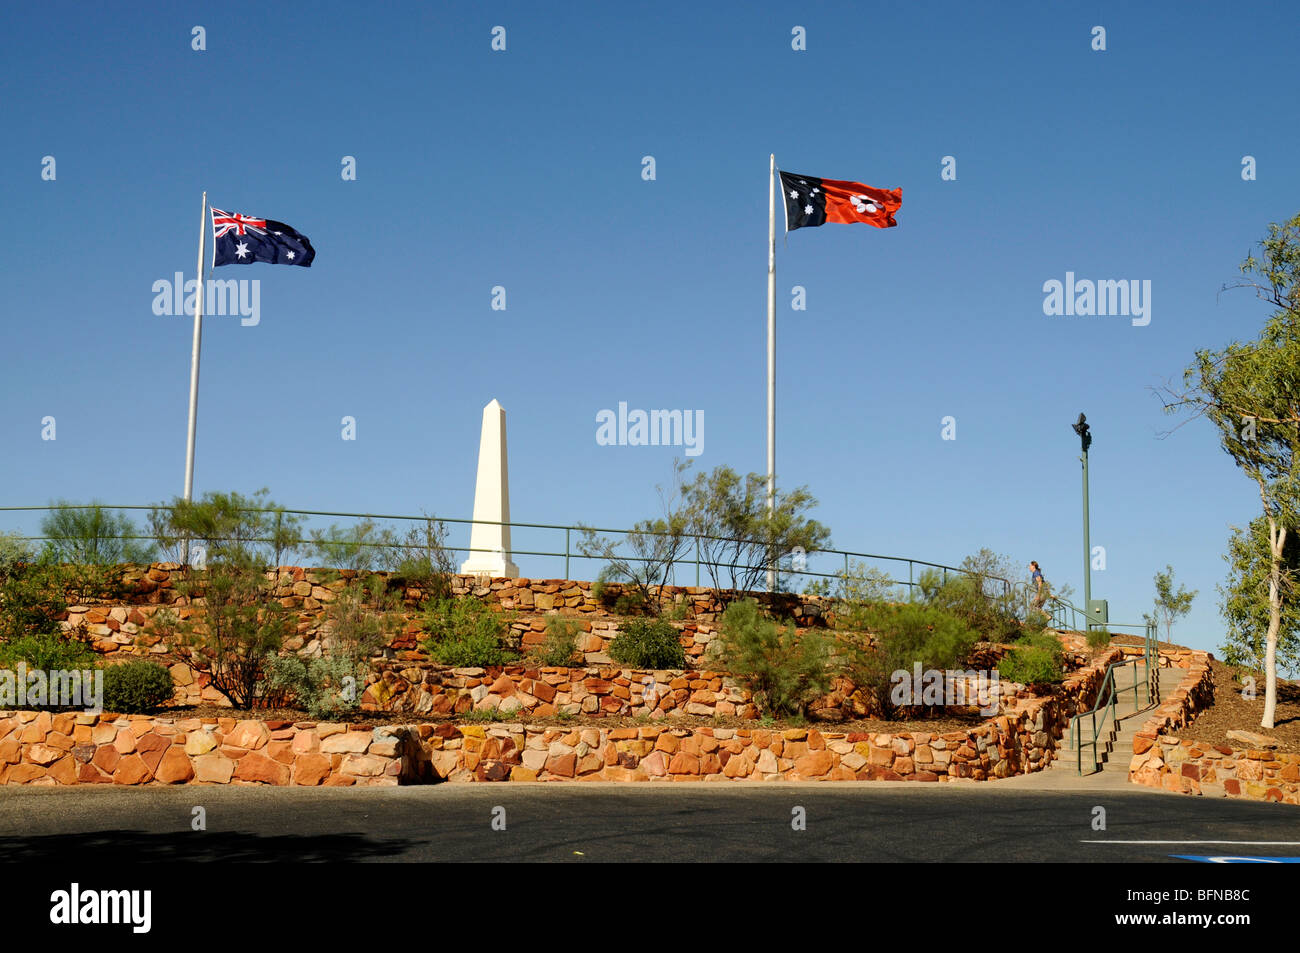 A war memorial on ANZAC hill in  Alice Springs, Australia - Stock Image